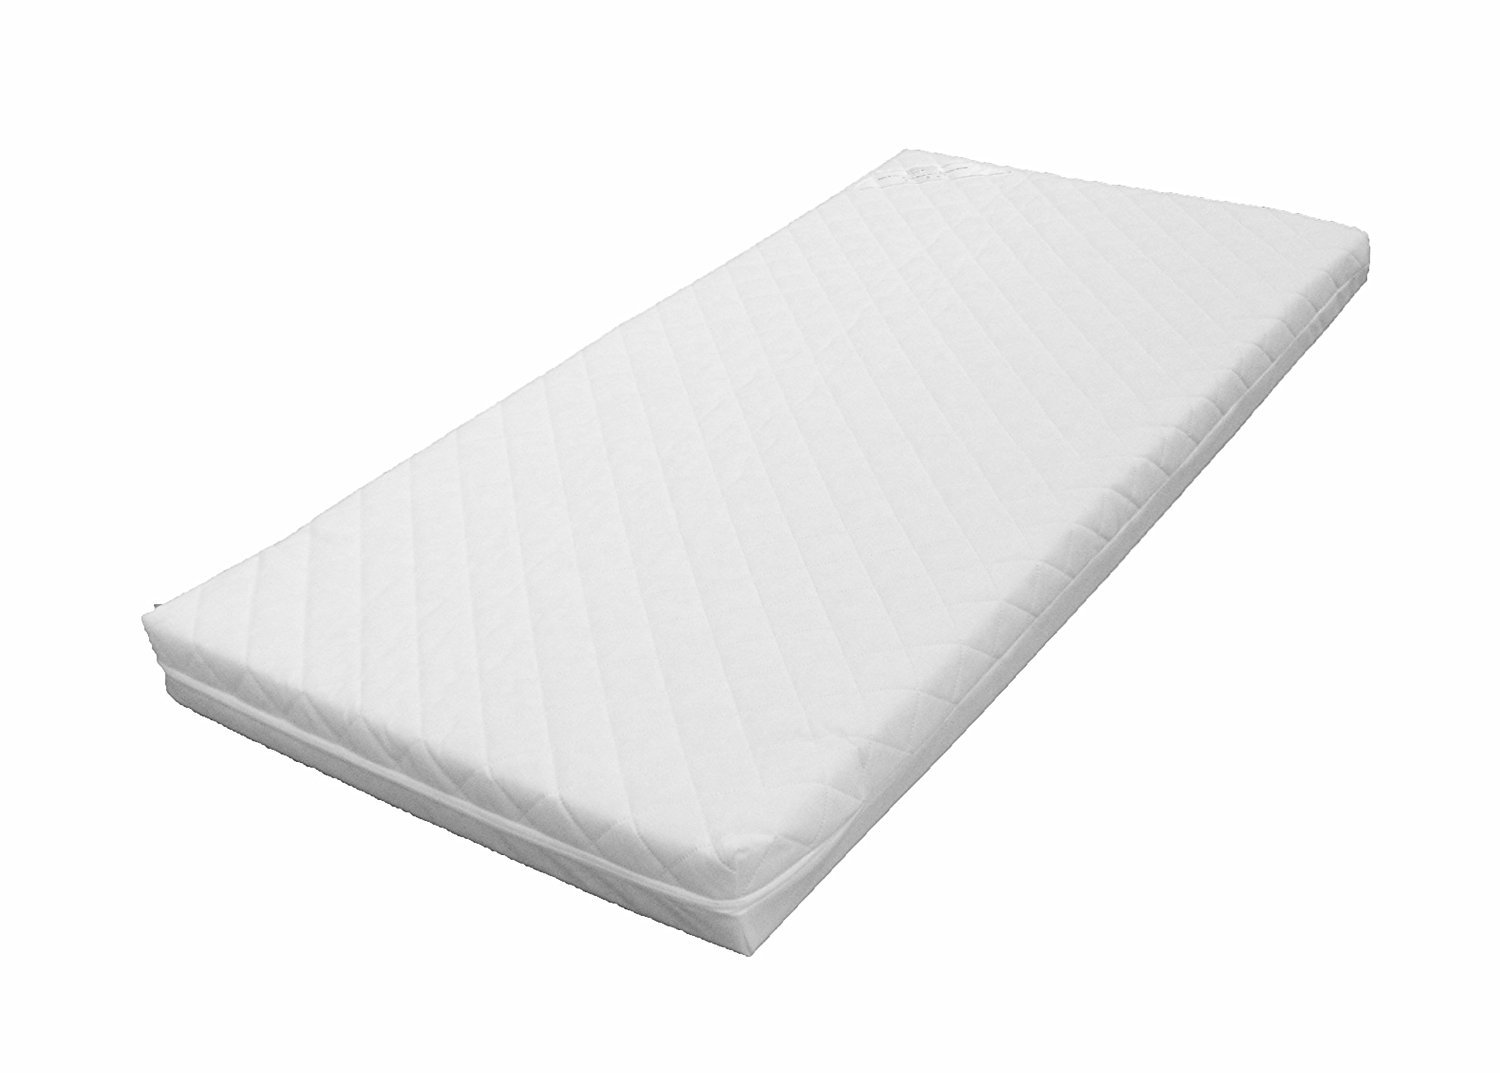 KATY® Superior Eco Fibre 140 x 70 x 10cm Thick Cot Bed Mattress With Freshtec Quilted Cover - Will Fit M& P Cot Beds 400 Size As Well As Other Makes. British Made